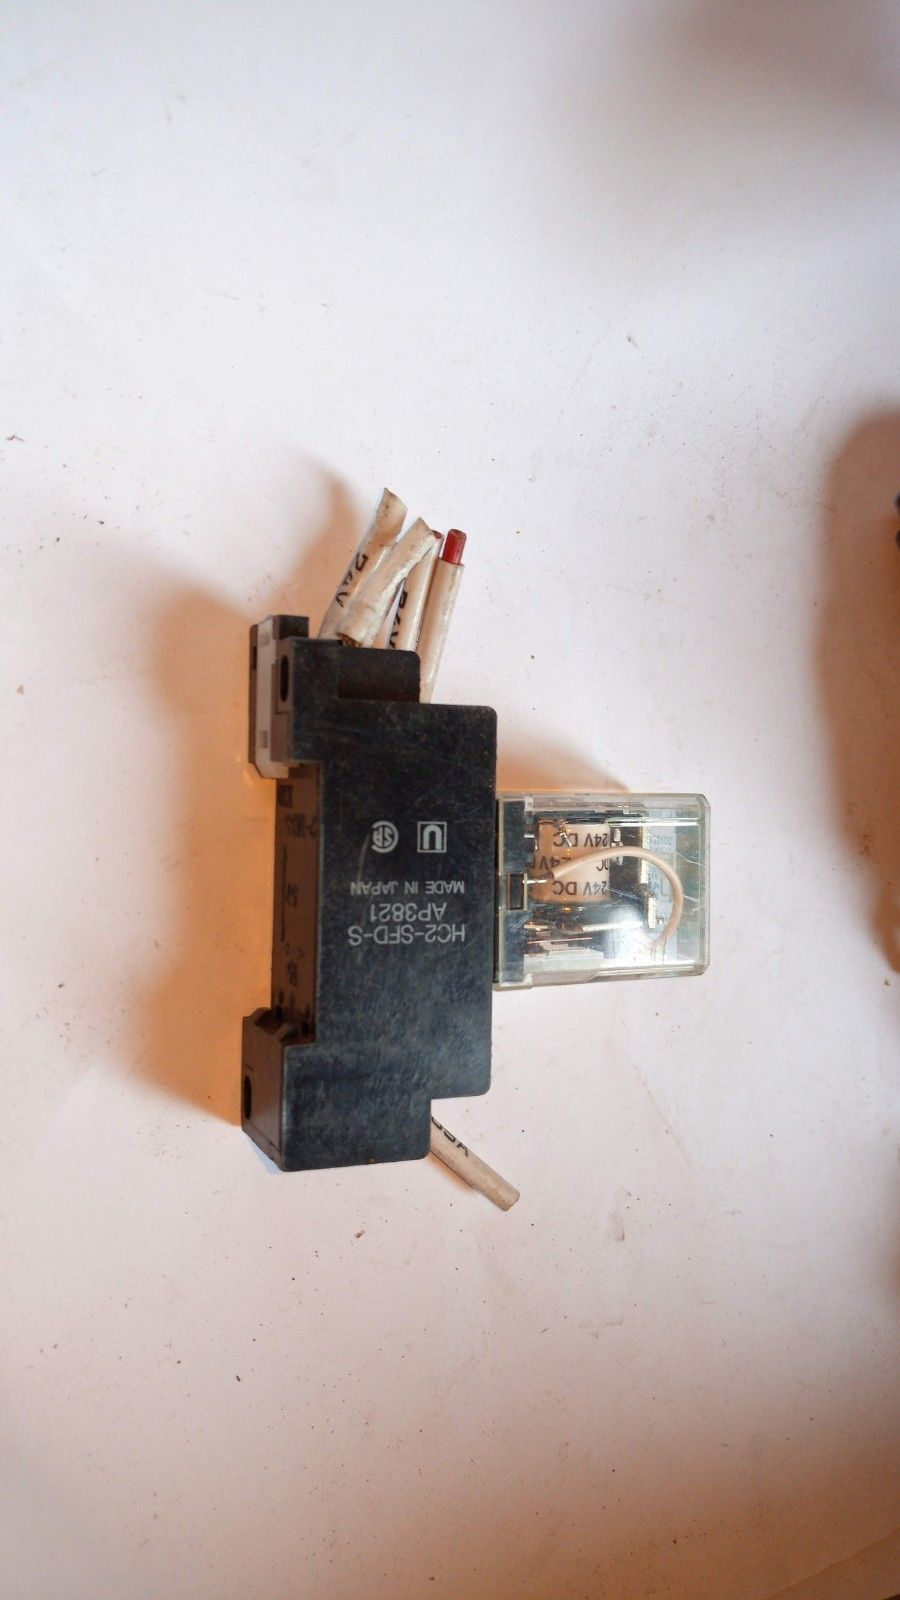 Nais Matsua relay HC2-H-DC24 with socket and 50 similar items on 24 volt dash lights, 12 volt 24 volt wiring, 24 volt transformer wiring, 24 volt control wiring, 24 volt headlights, 24 volt solenoid switch, 24 volt center tap transformers, 24 volt dc relay, 12 and 24 volt wiring, 24 volt speaker wiring, 24 volt hvac relay, 24 volt heating relays, 24 volt ac relay, 24 volt timer relay switch, 24 volt relay switch 110, 24 volt ac wiring diagram, 24 volt relay solenoid, 24 volt marine wiring diagrams, 24 volt 5 prong relay, 24 volt ignition relay,